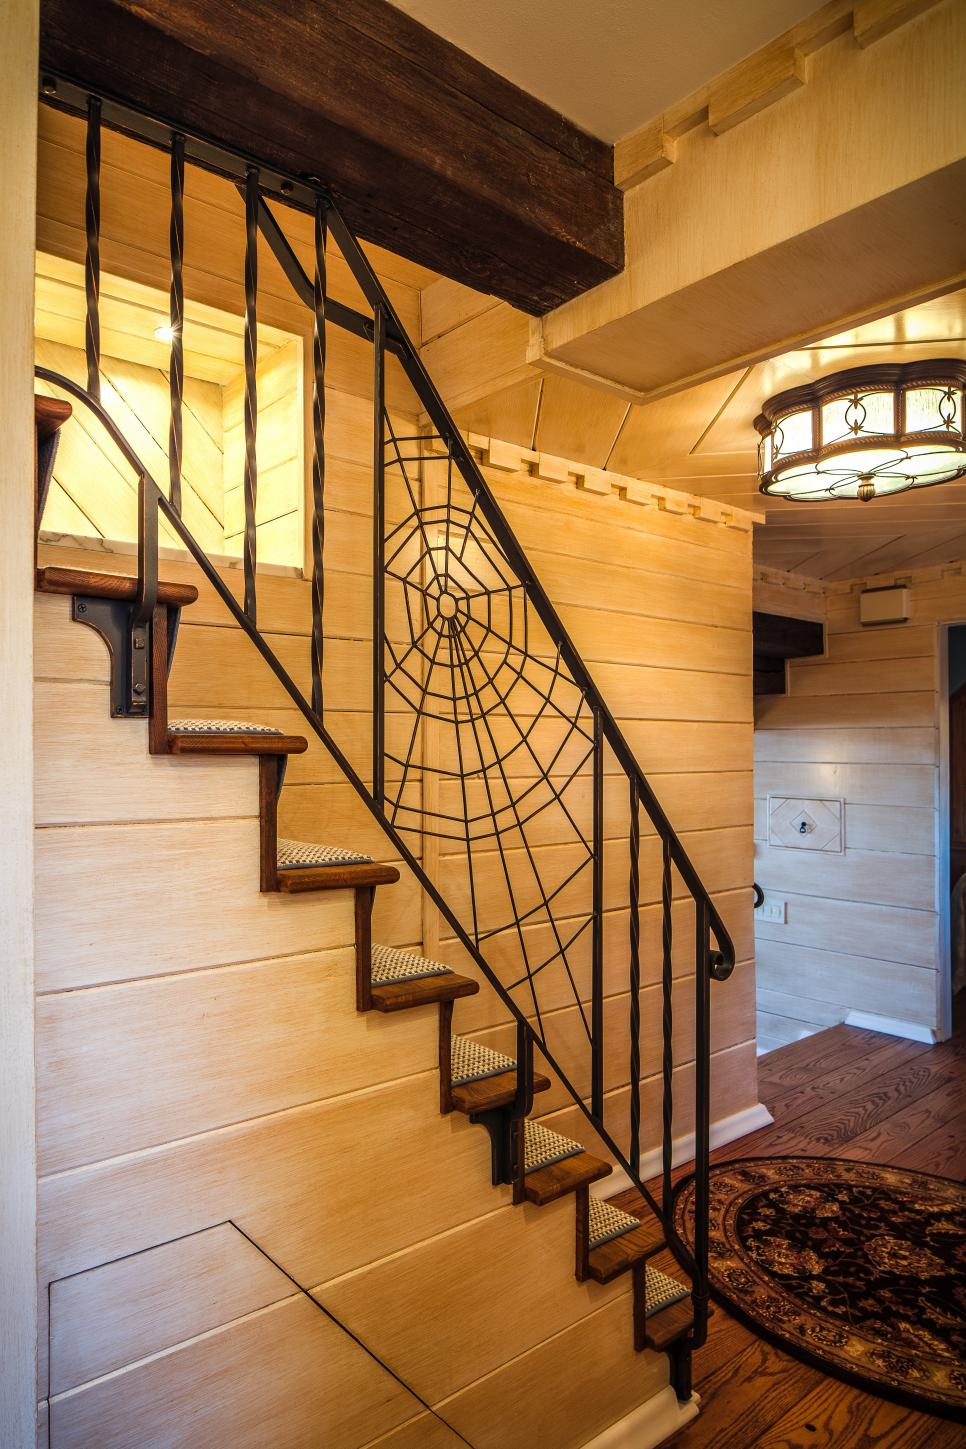 Stair Rail with Custom Wrought Iron Spiderweb Design